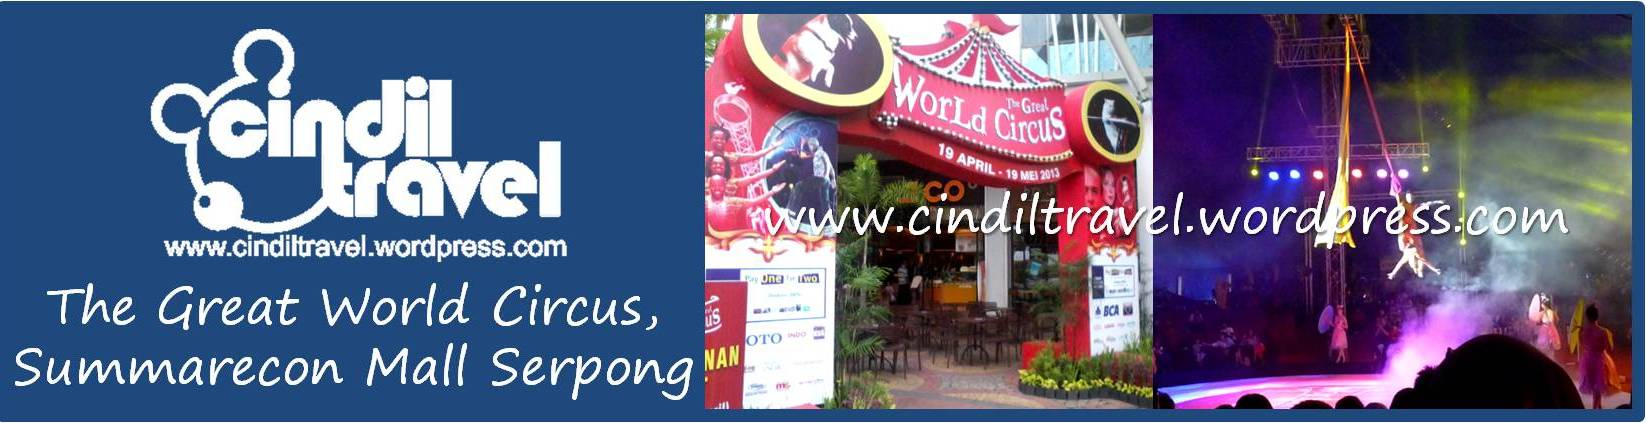 The Great World Circus Summarecon Mall Serpong 1